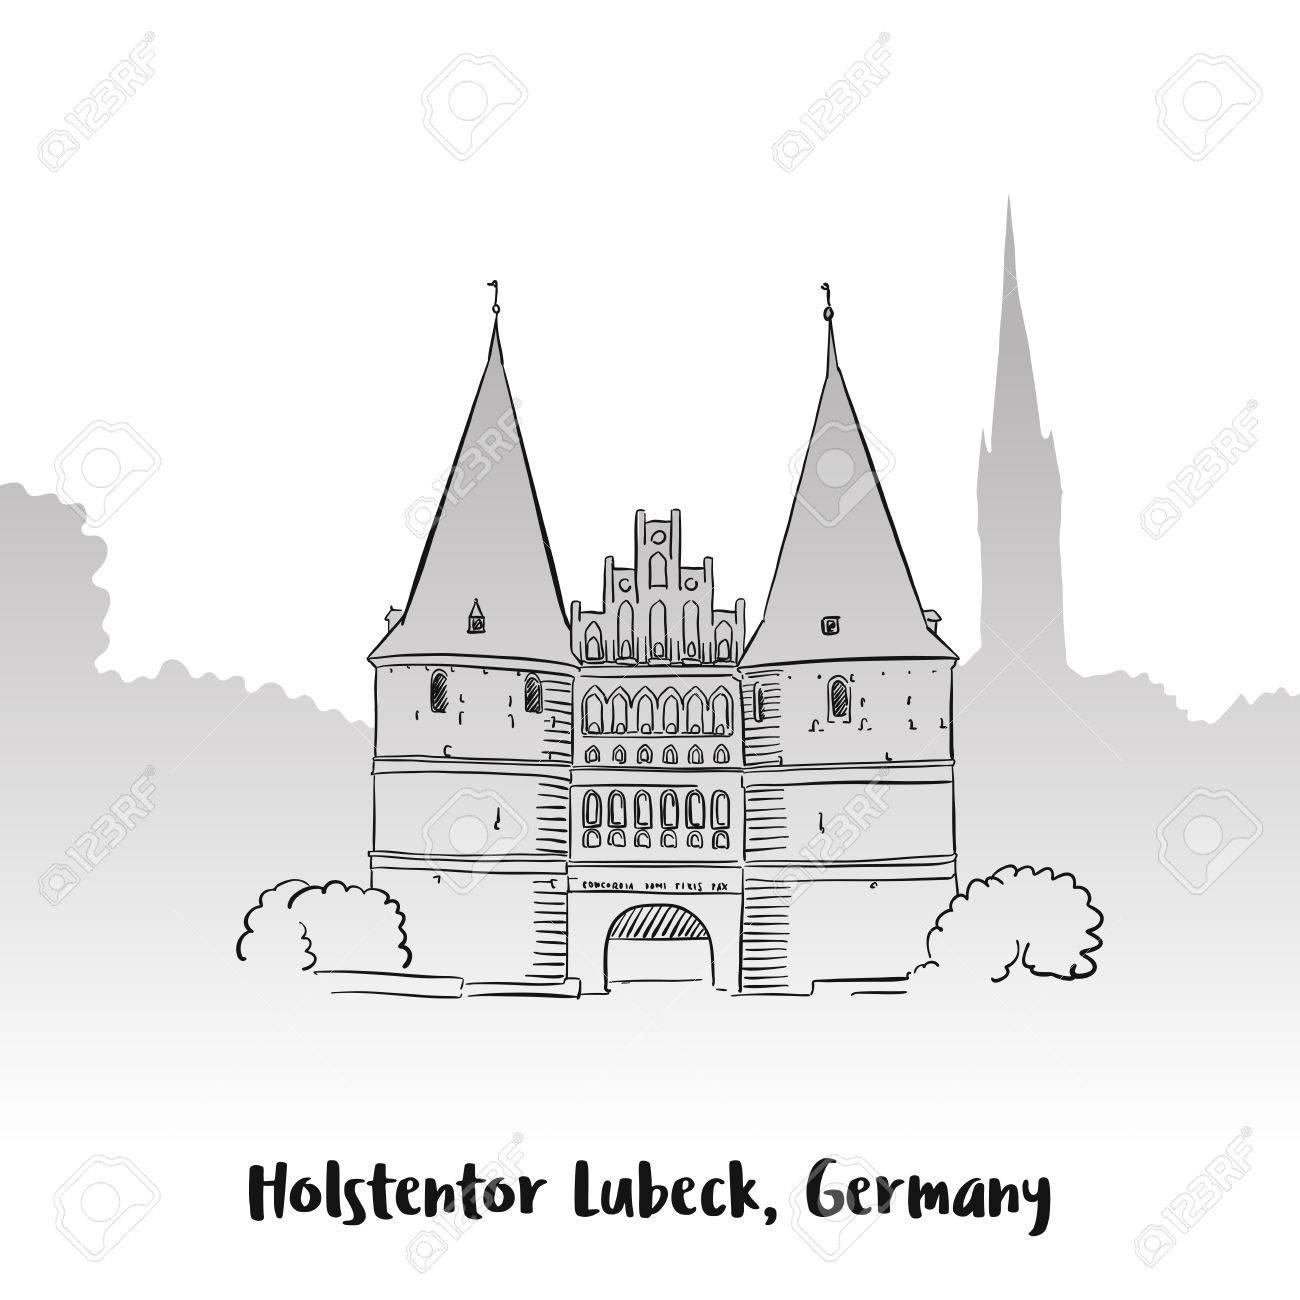 Lübeck Card Holstentor Lubeck Greeting Card Hand Drawn Vector Outline Sketch